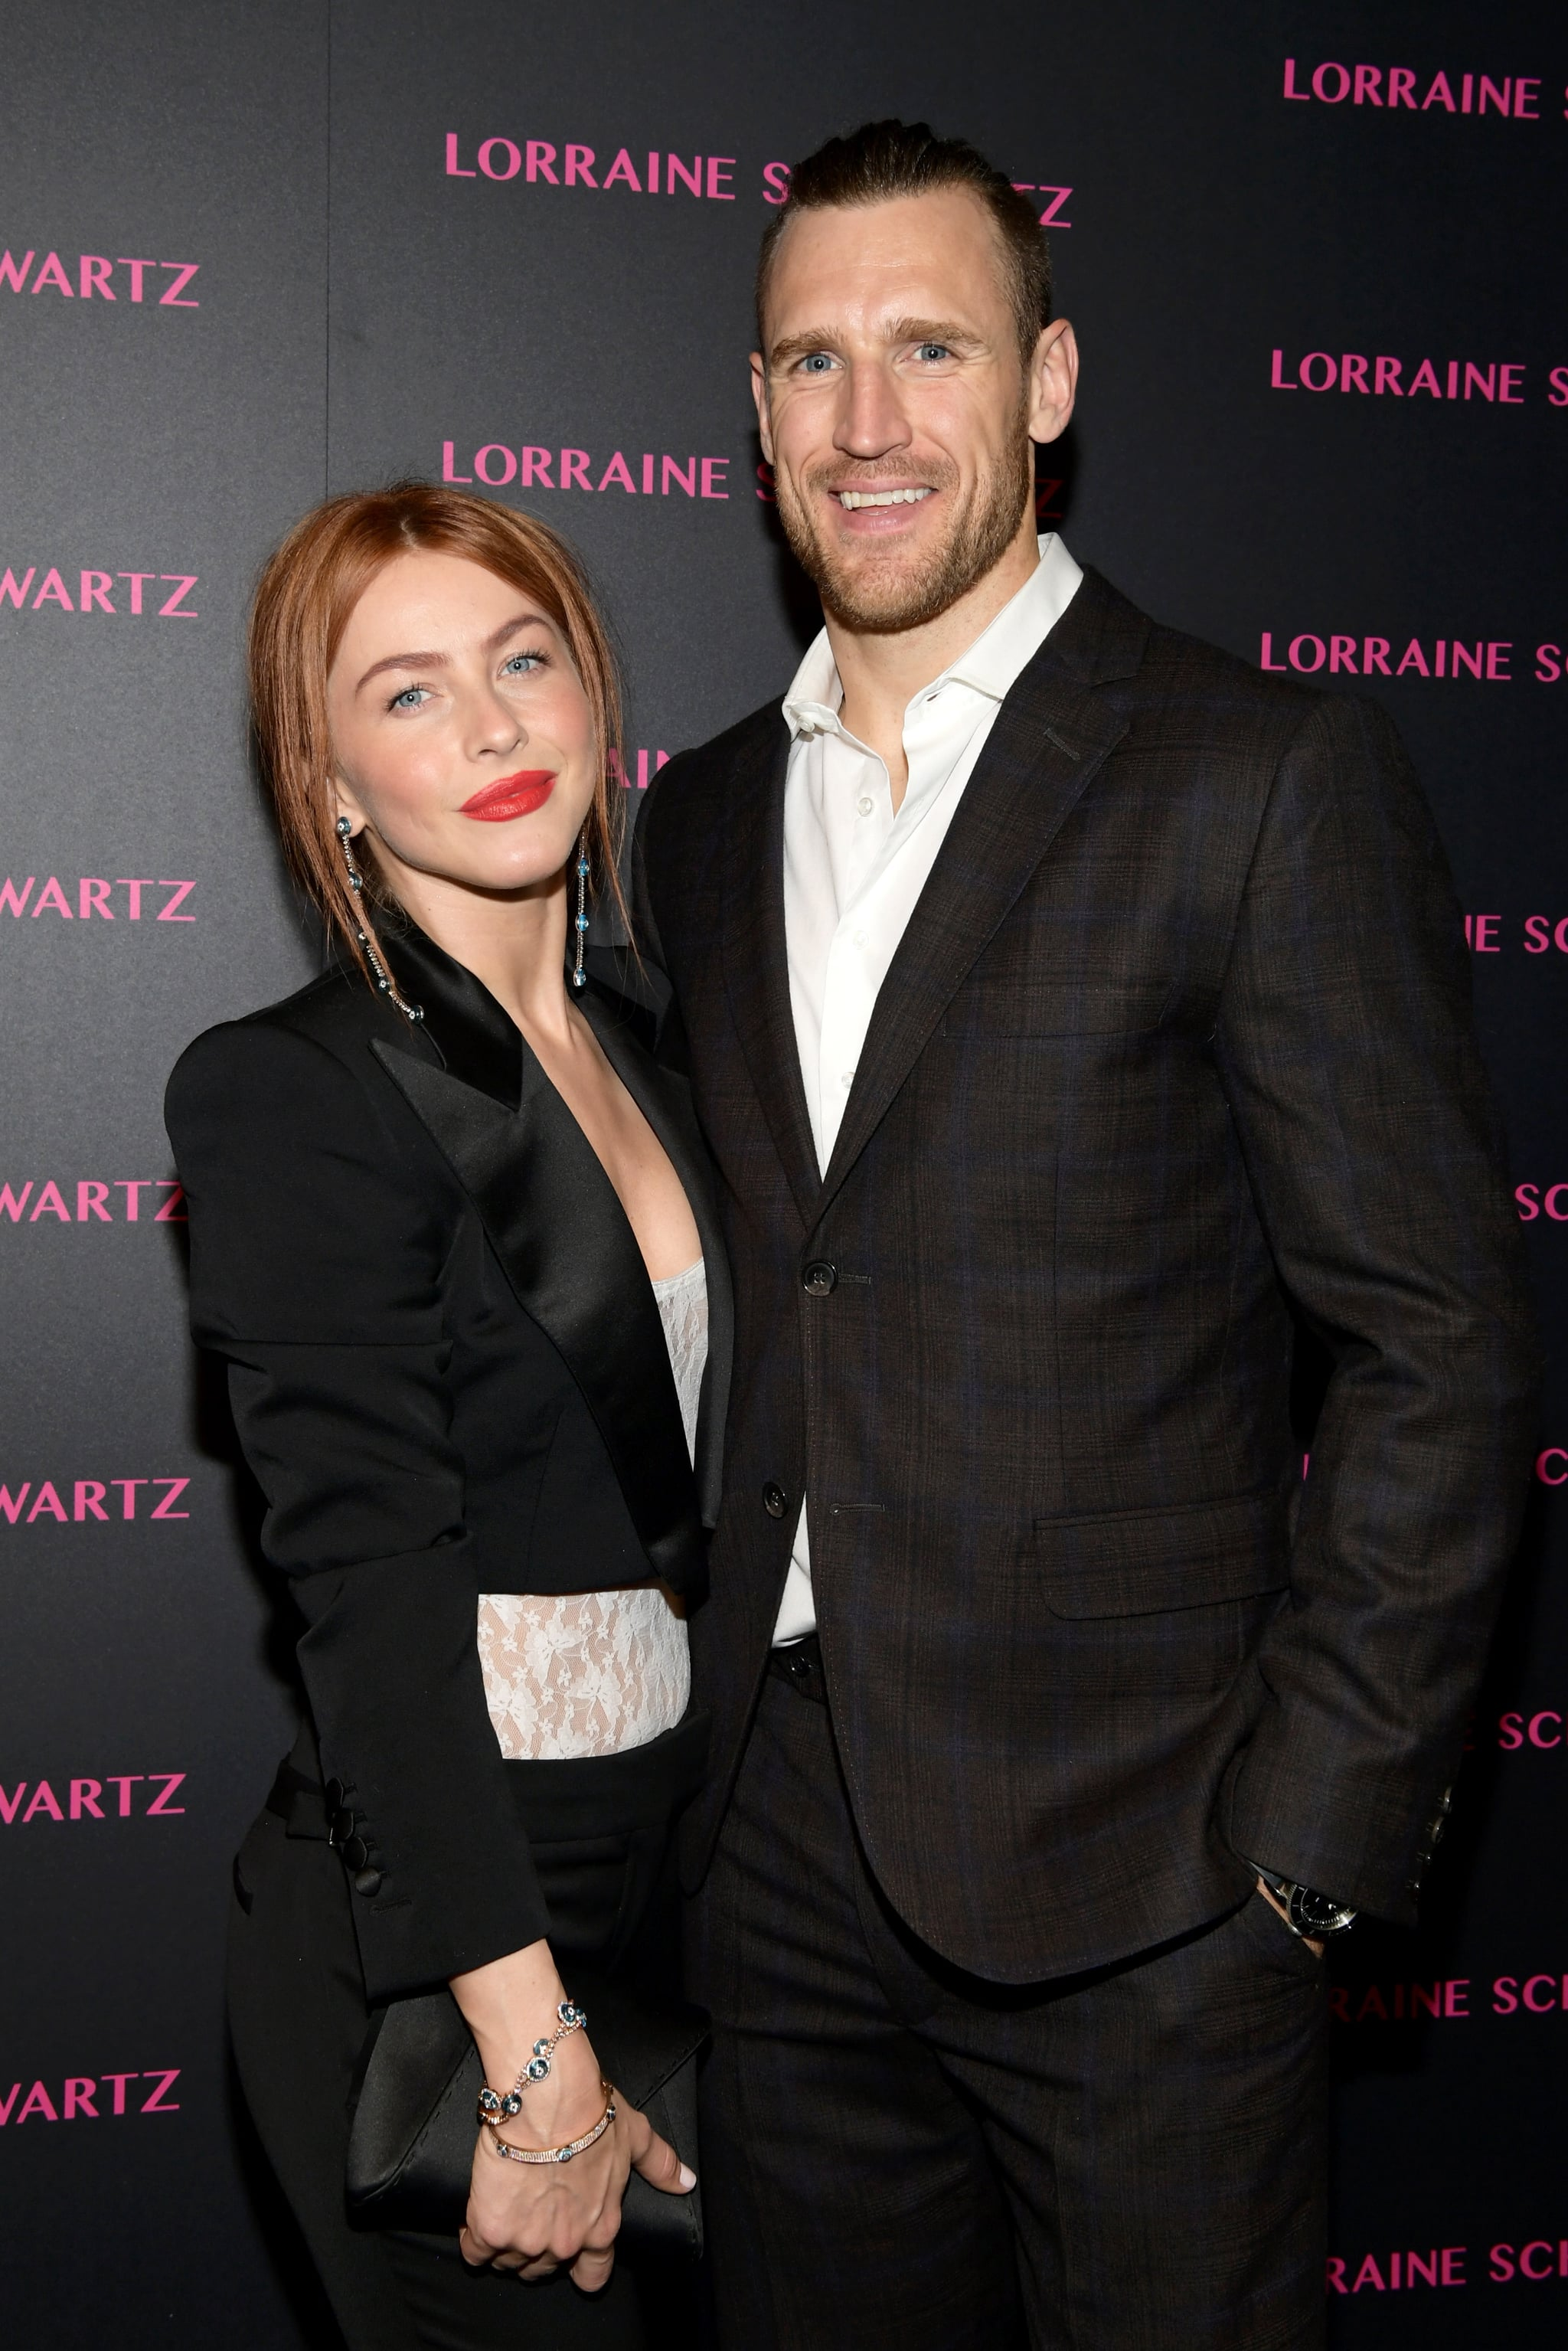 WEST HOLLYWOOD, CA - MARCH 13:  Julianne Hough (L) and Brooks Laich attend Lorraine Schwartz launches The Eye Bangle a new addition to her signature Against Evil Eye Collection at Delilah on March 13, 2018 in West Hollywood, California.  (Photo by Emma McIntyre/Getty Images for Lorraine Schwartz )